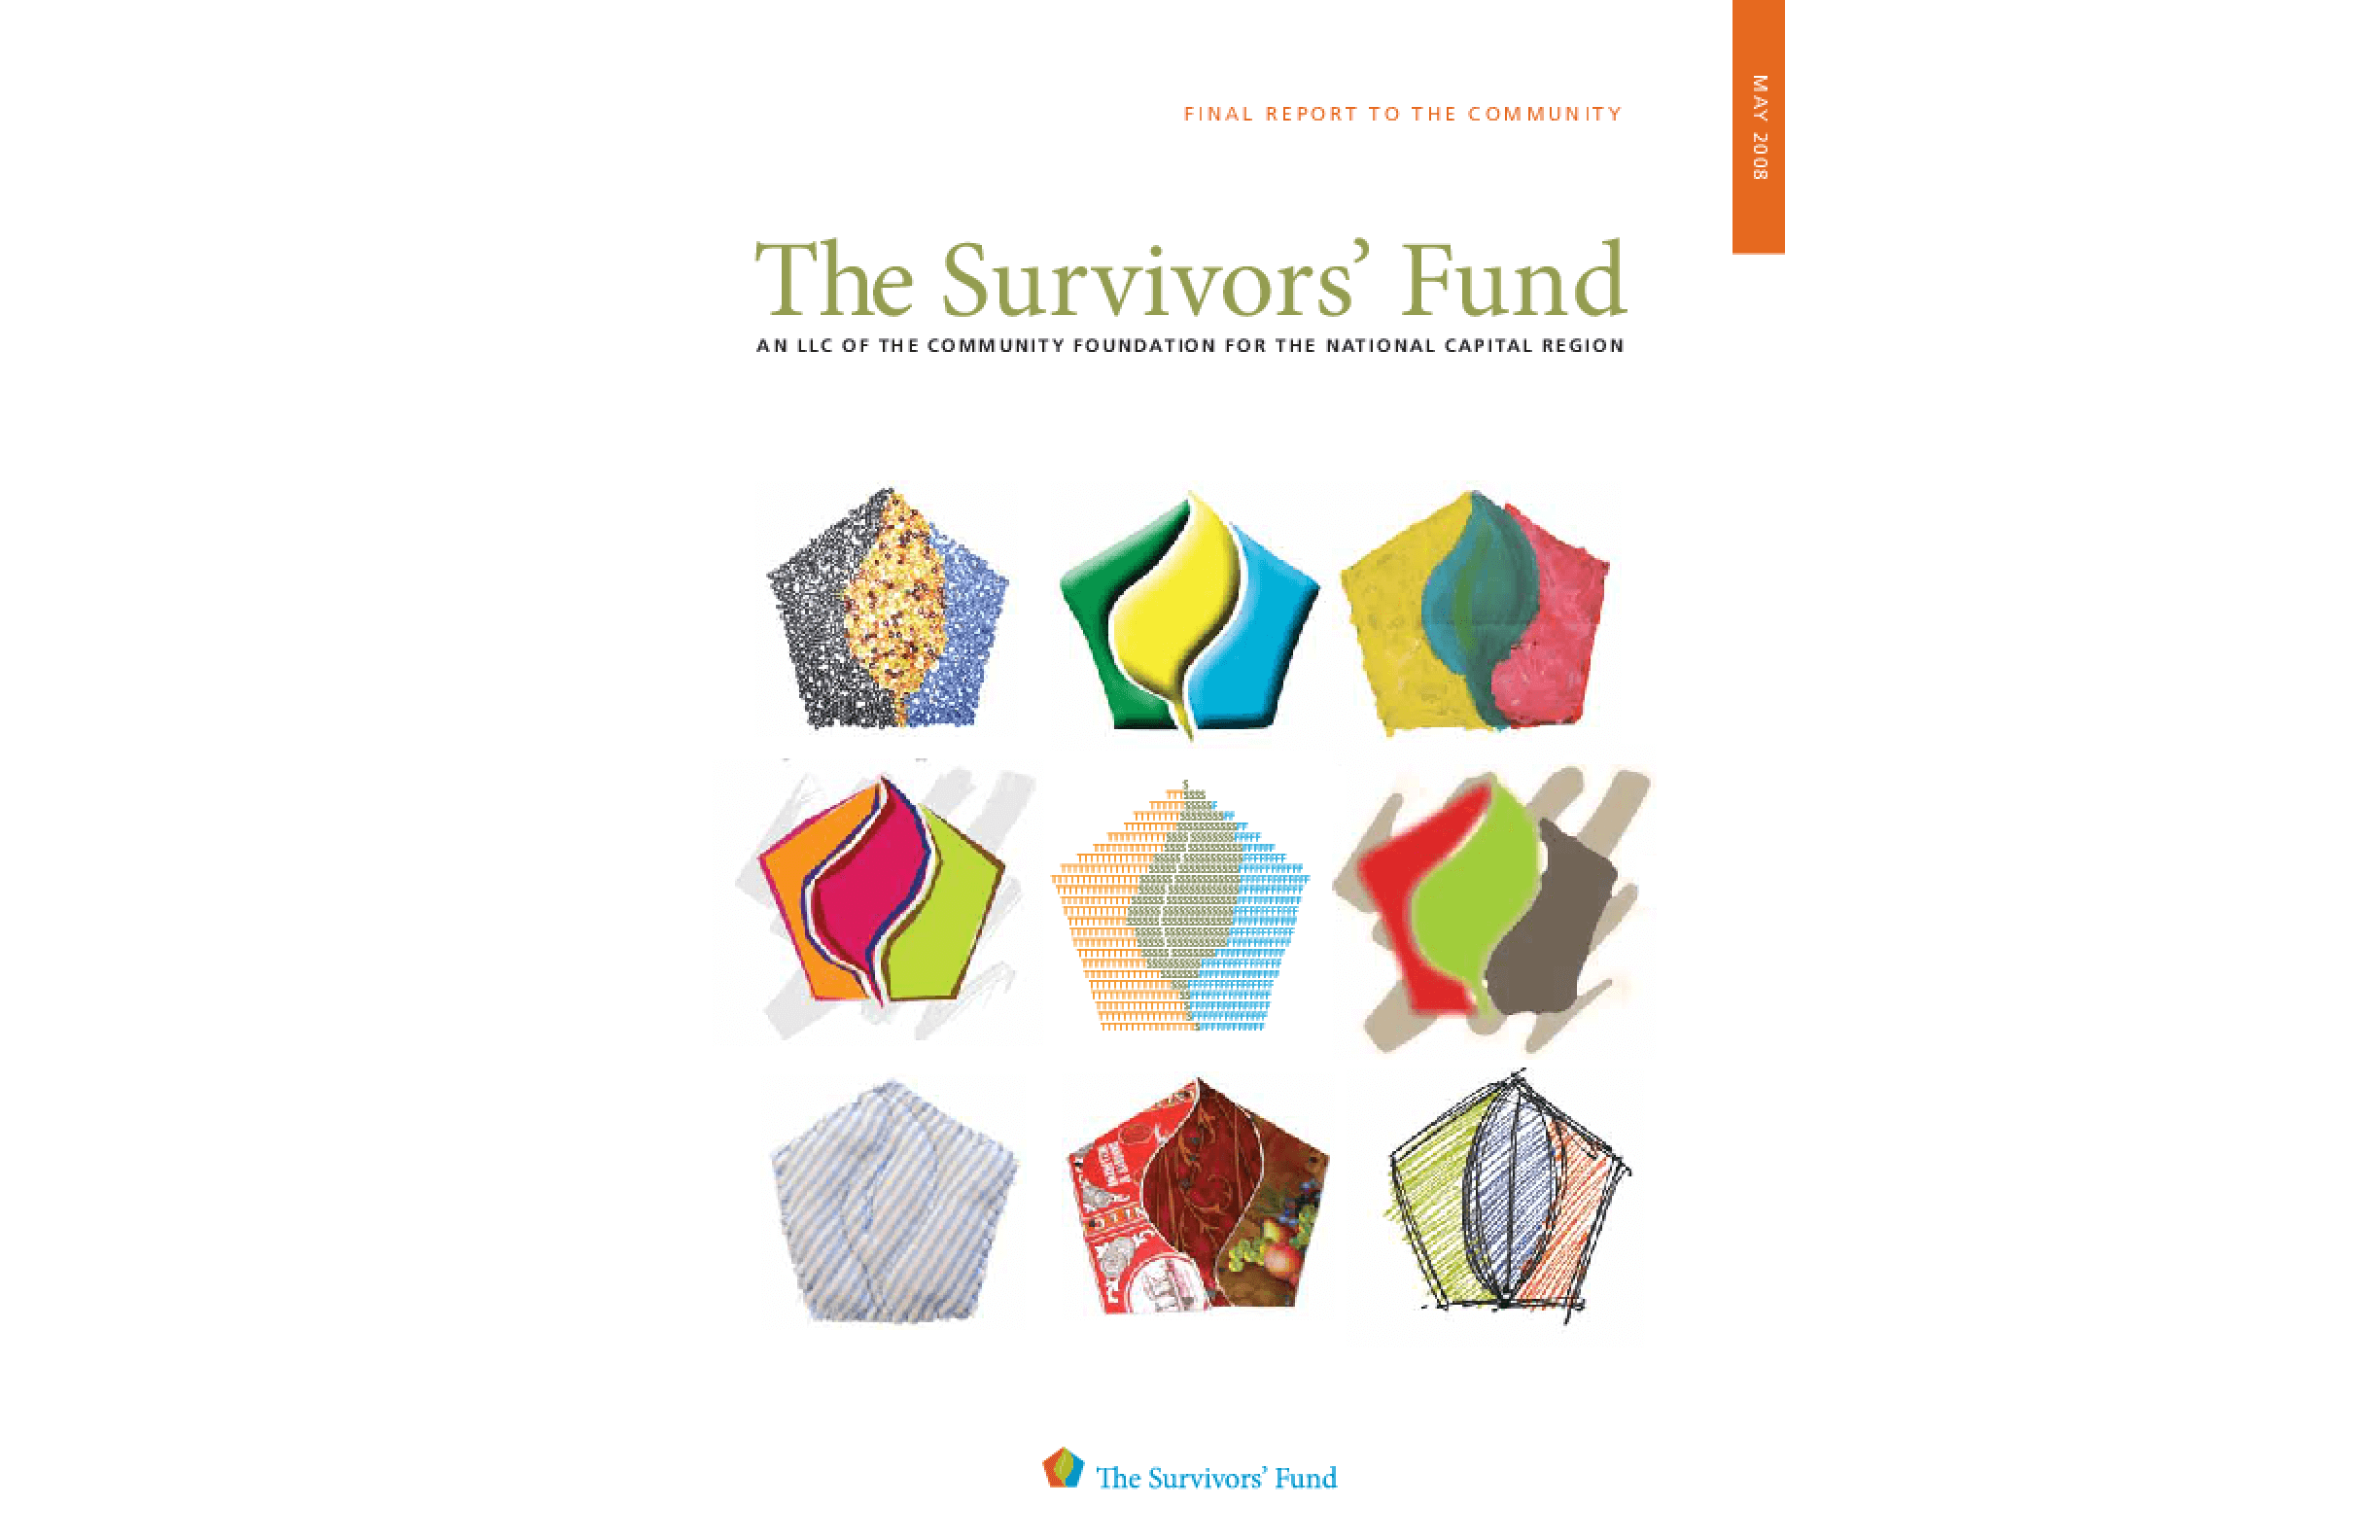 The Survivors' Fund: Final Report